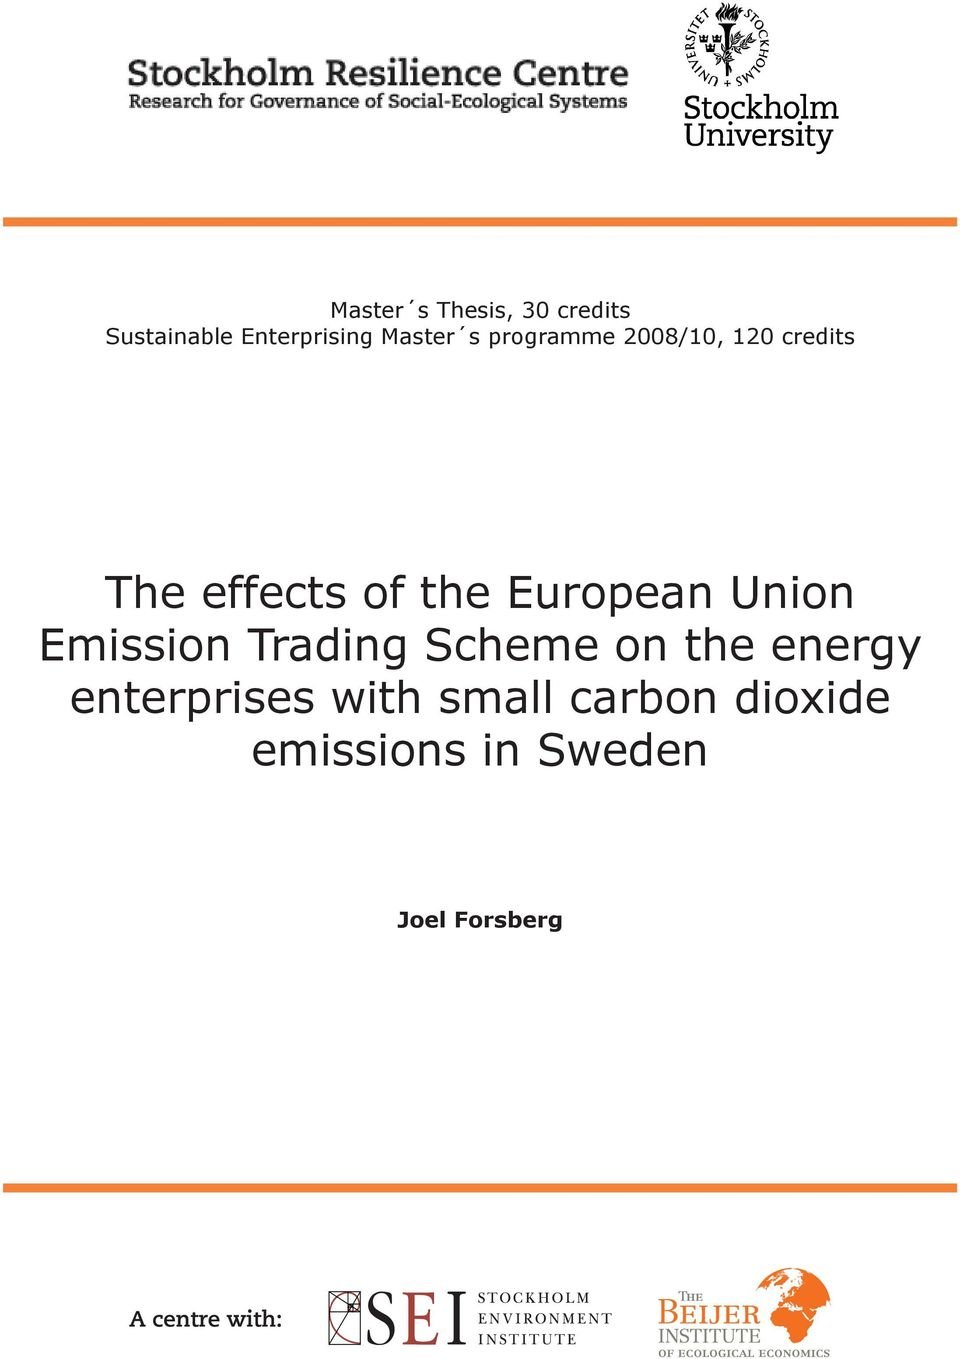 European Union Emission Trading Scheme on the energy